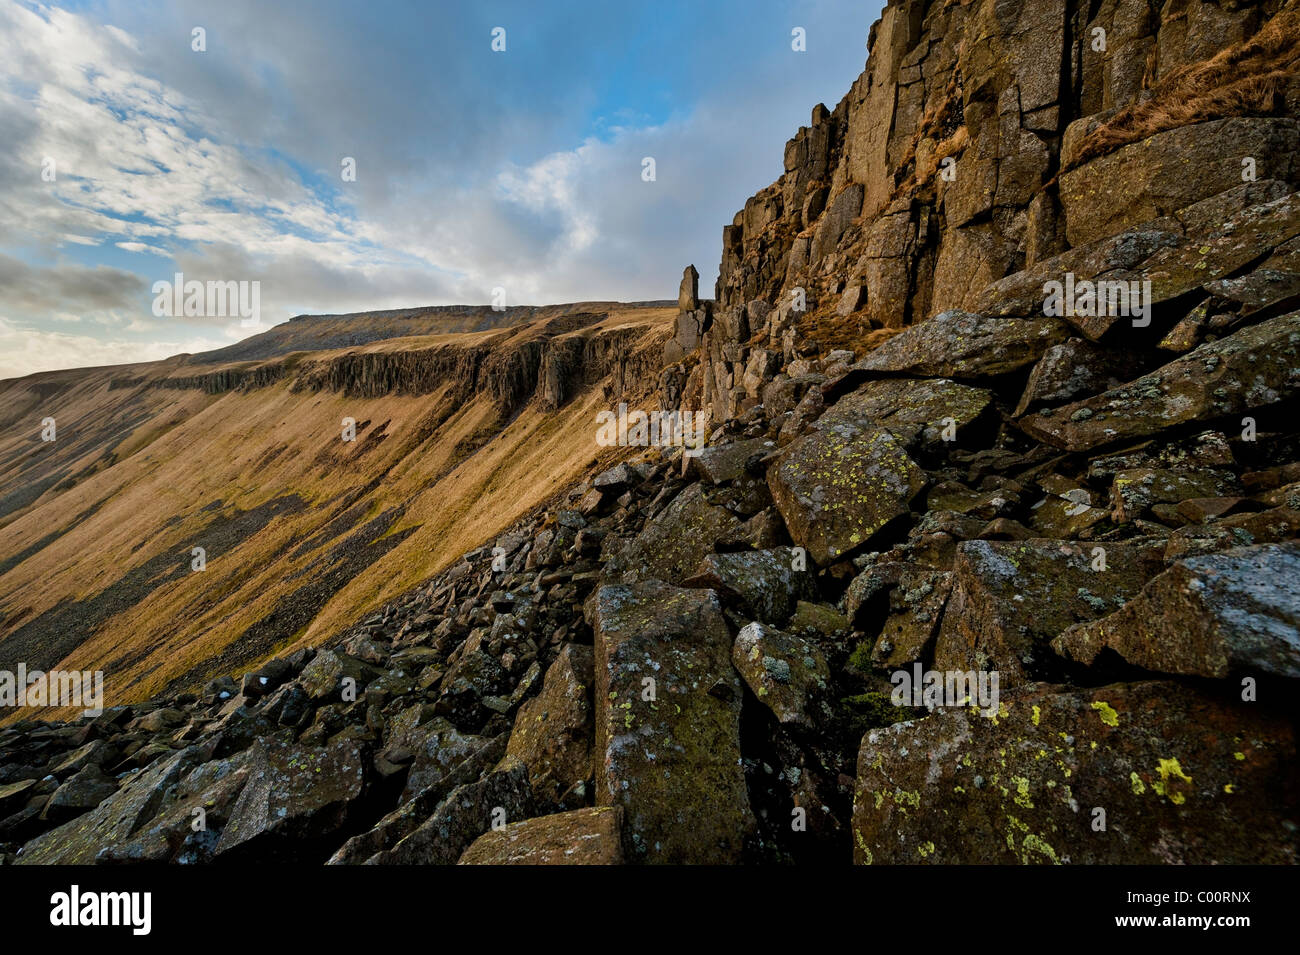 Crags on the North side of High Cup Nick - Stock Image